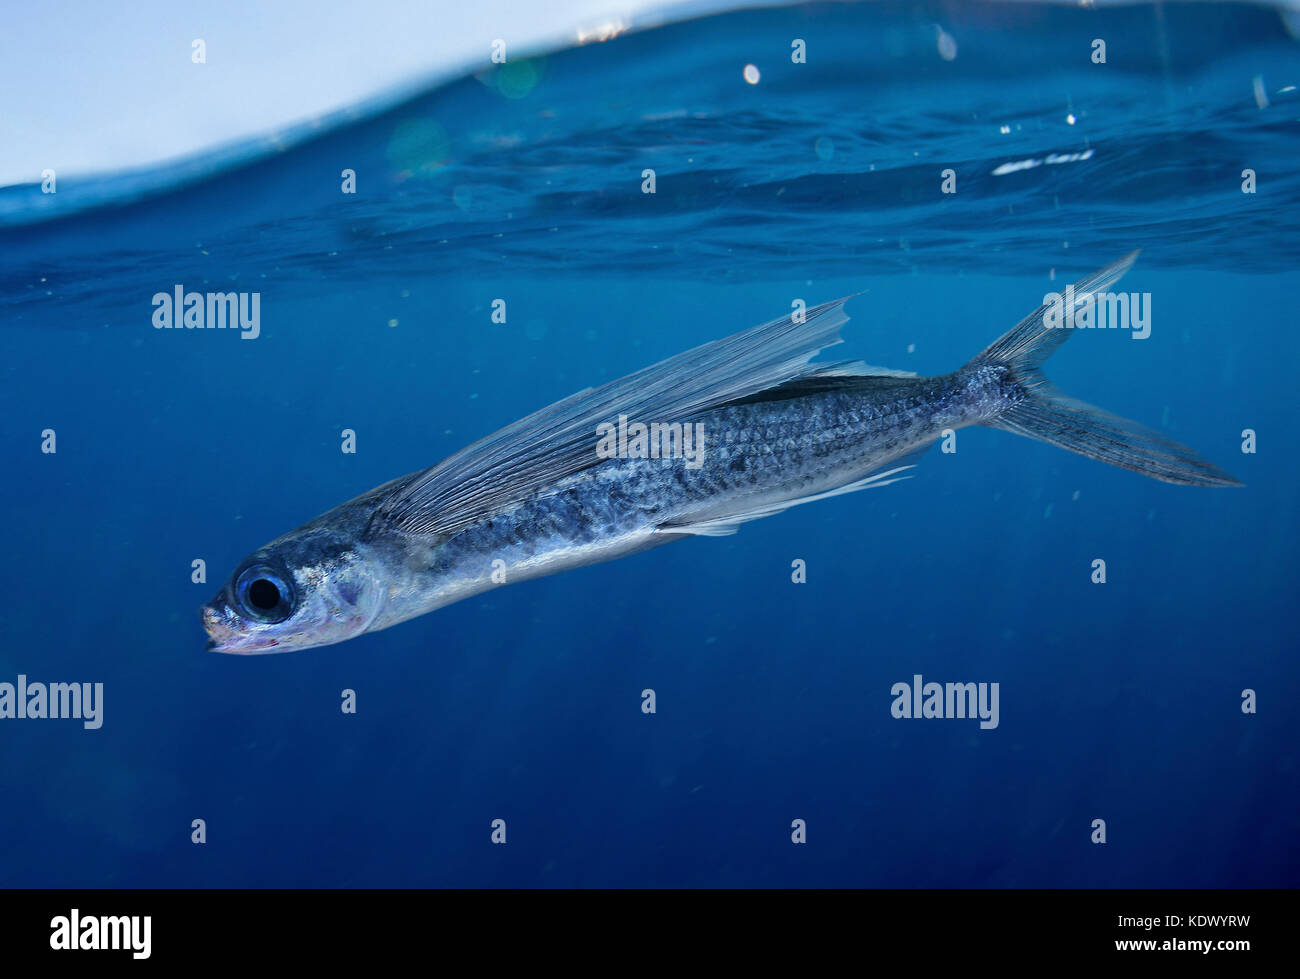 Flying fish species stock photos flying fish species for The flying fish